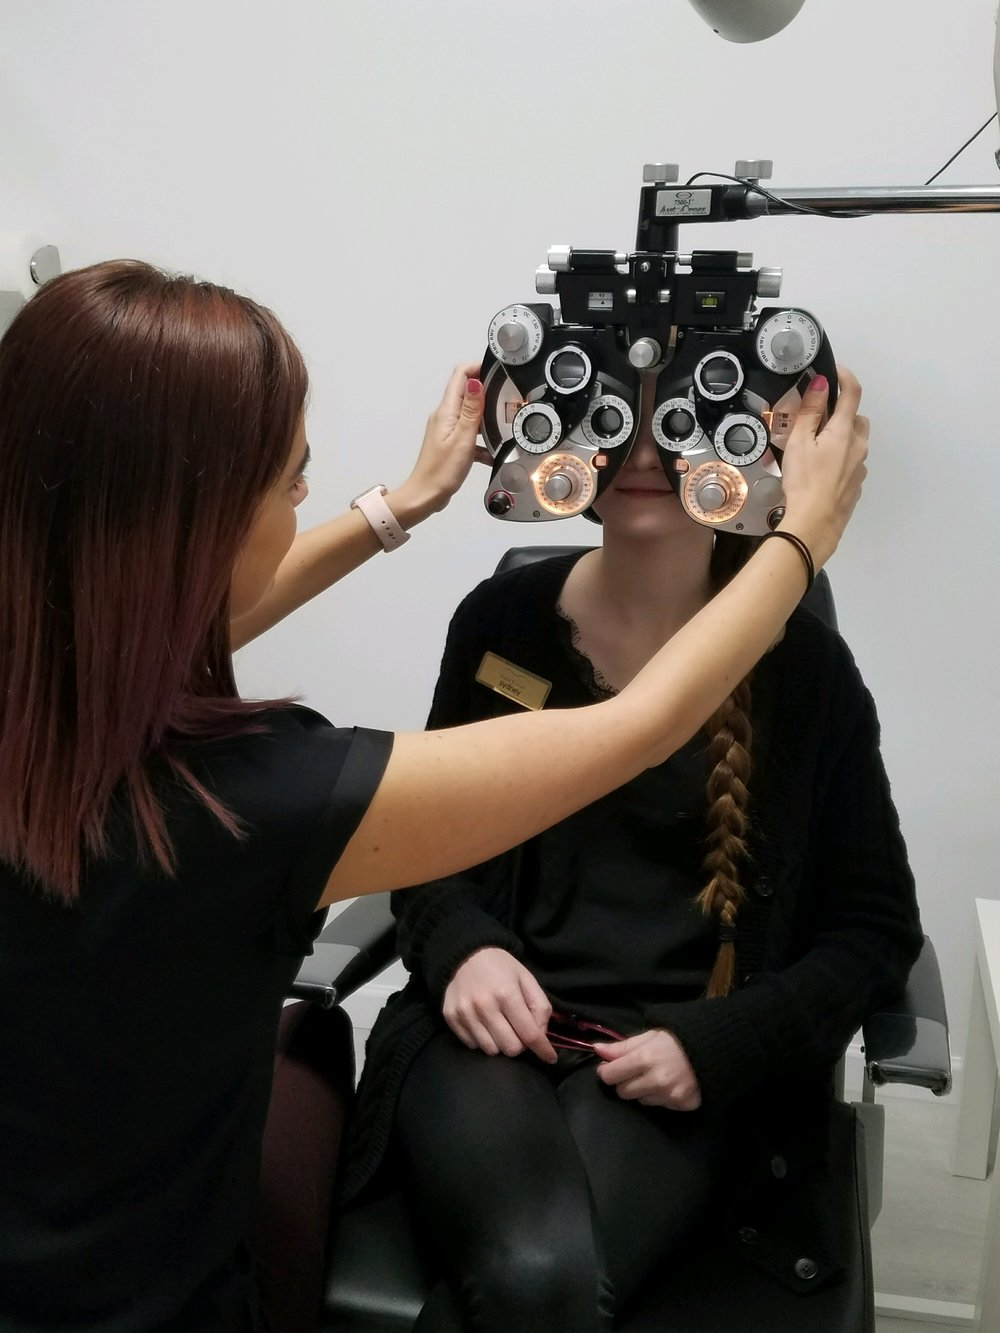 Optometrist - Eye Doctor  - Eye Exams, Contact Lens Exams, Pediatric Exams, Kerataconus Exams